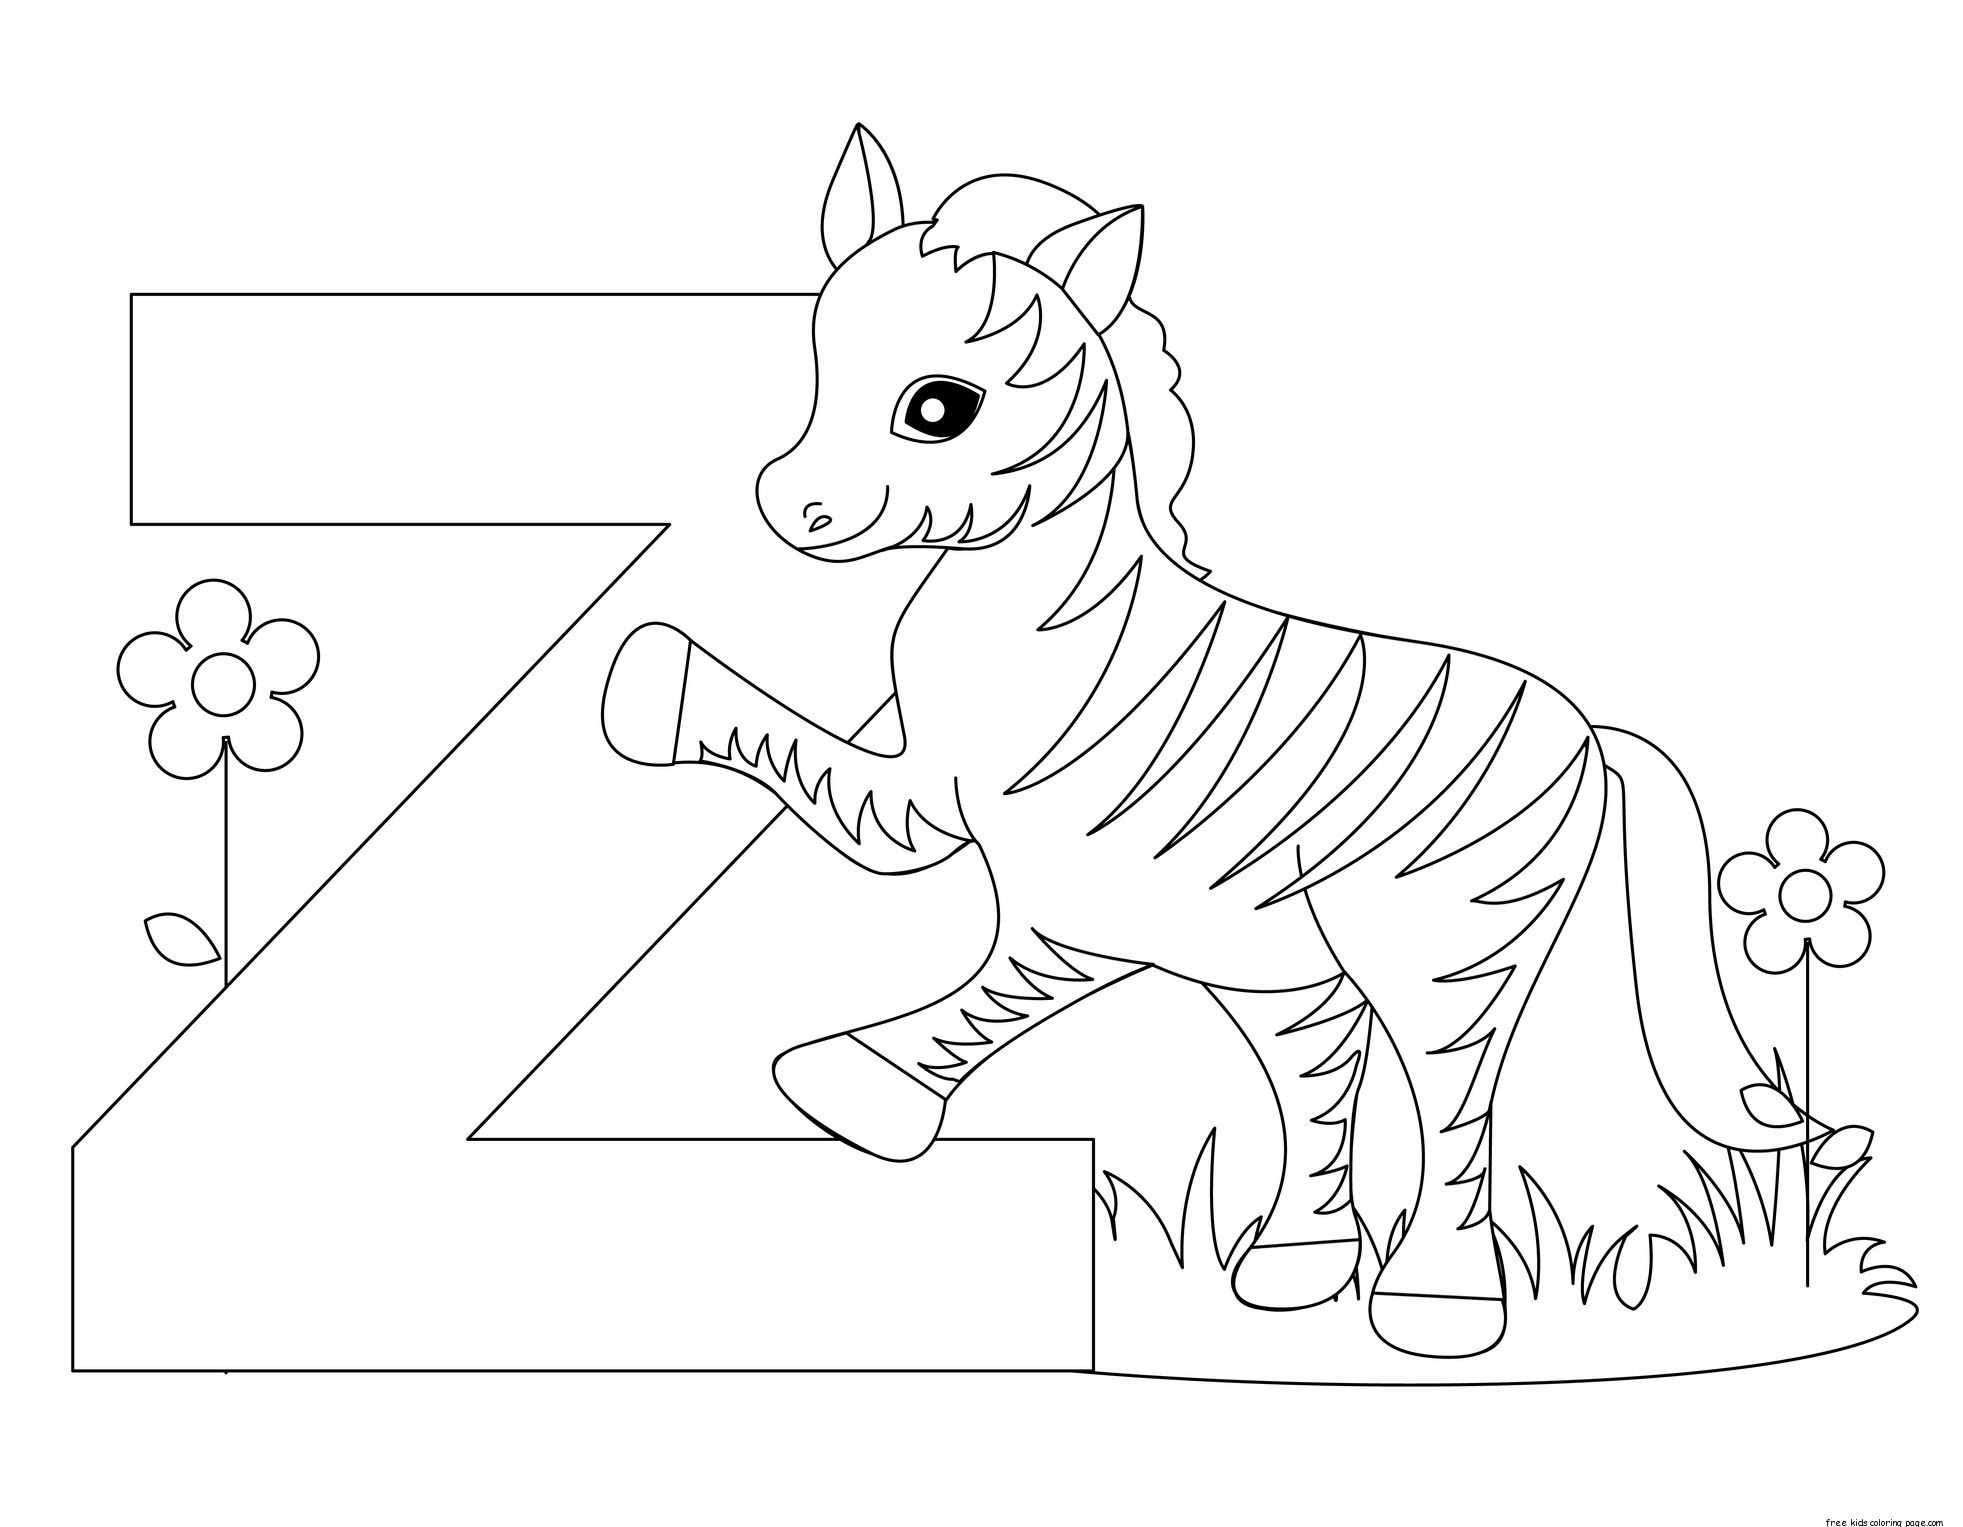 coloring alphabet animals zoo animals alphabet coloring pages by the kinder kids tpt alphabet coloring animals